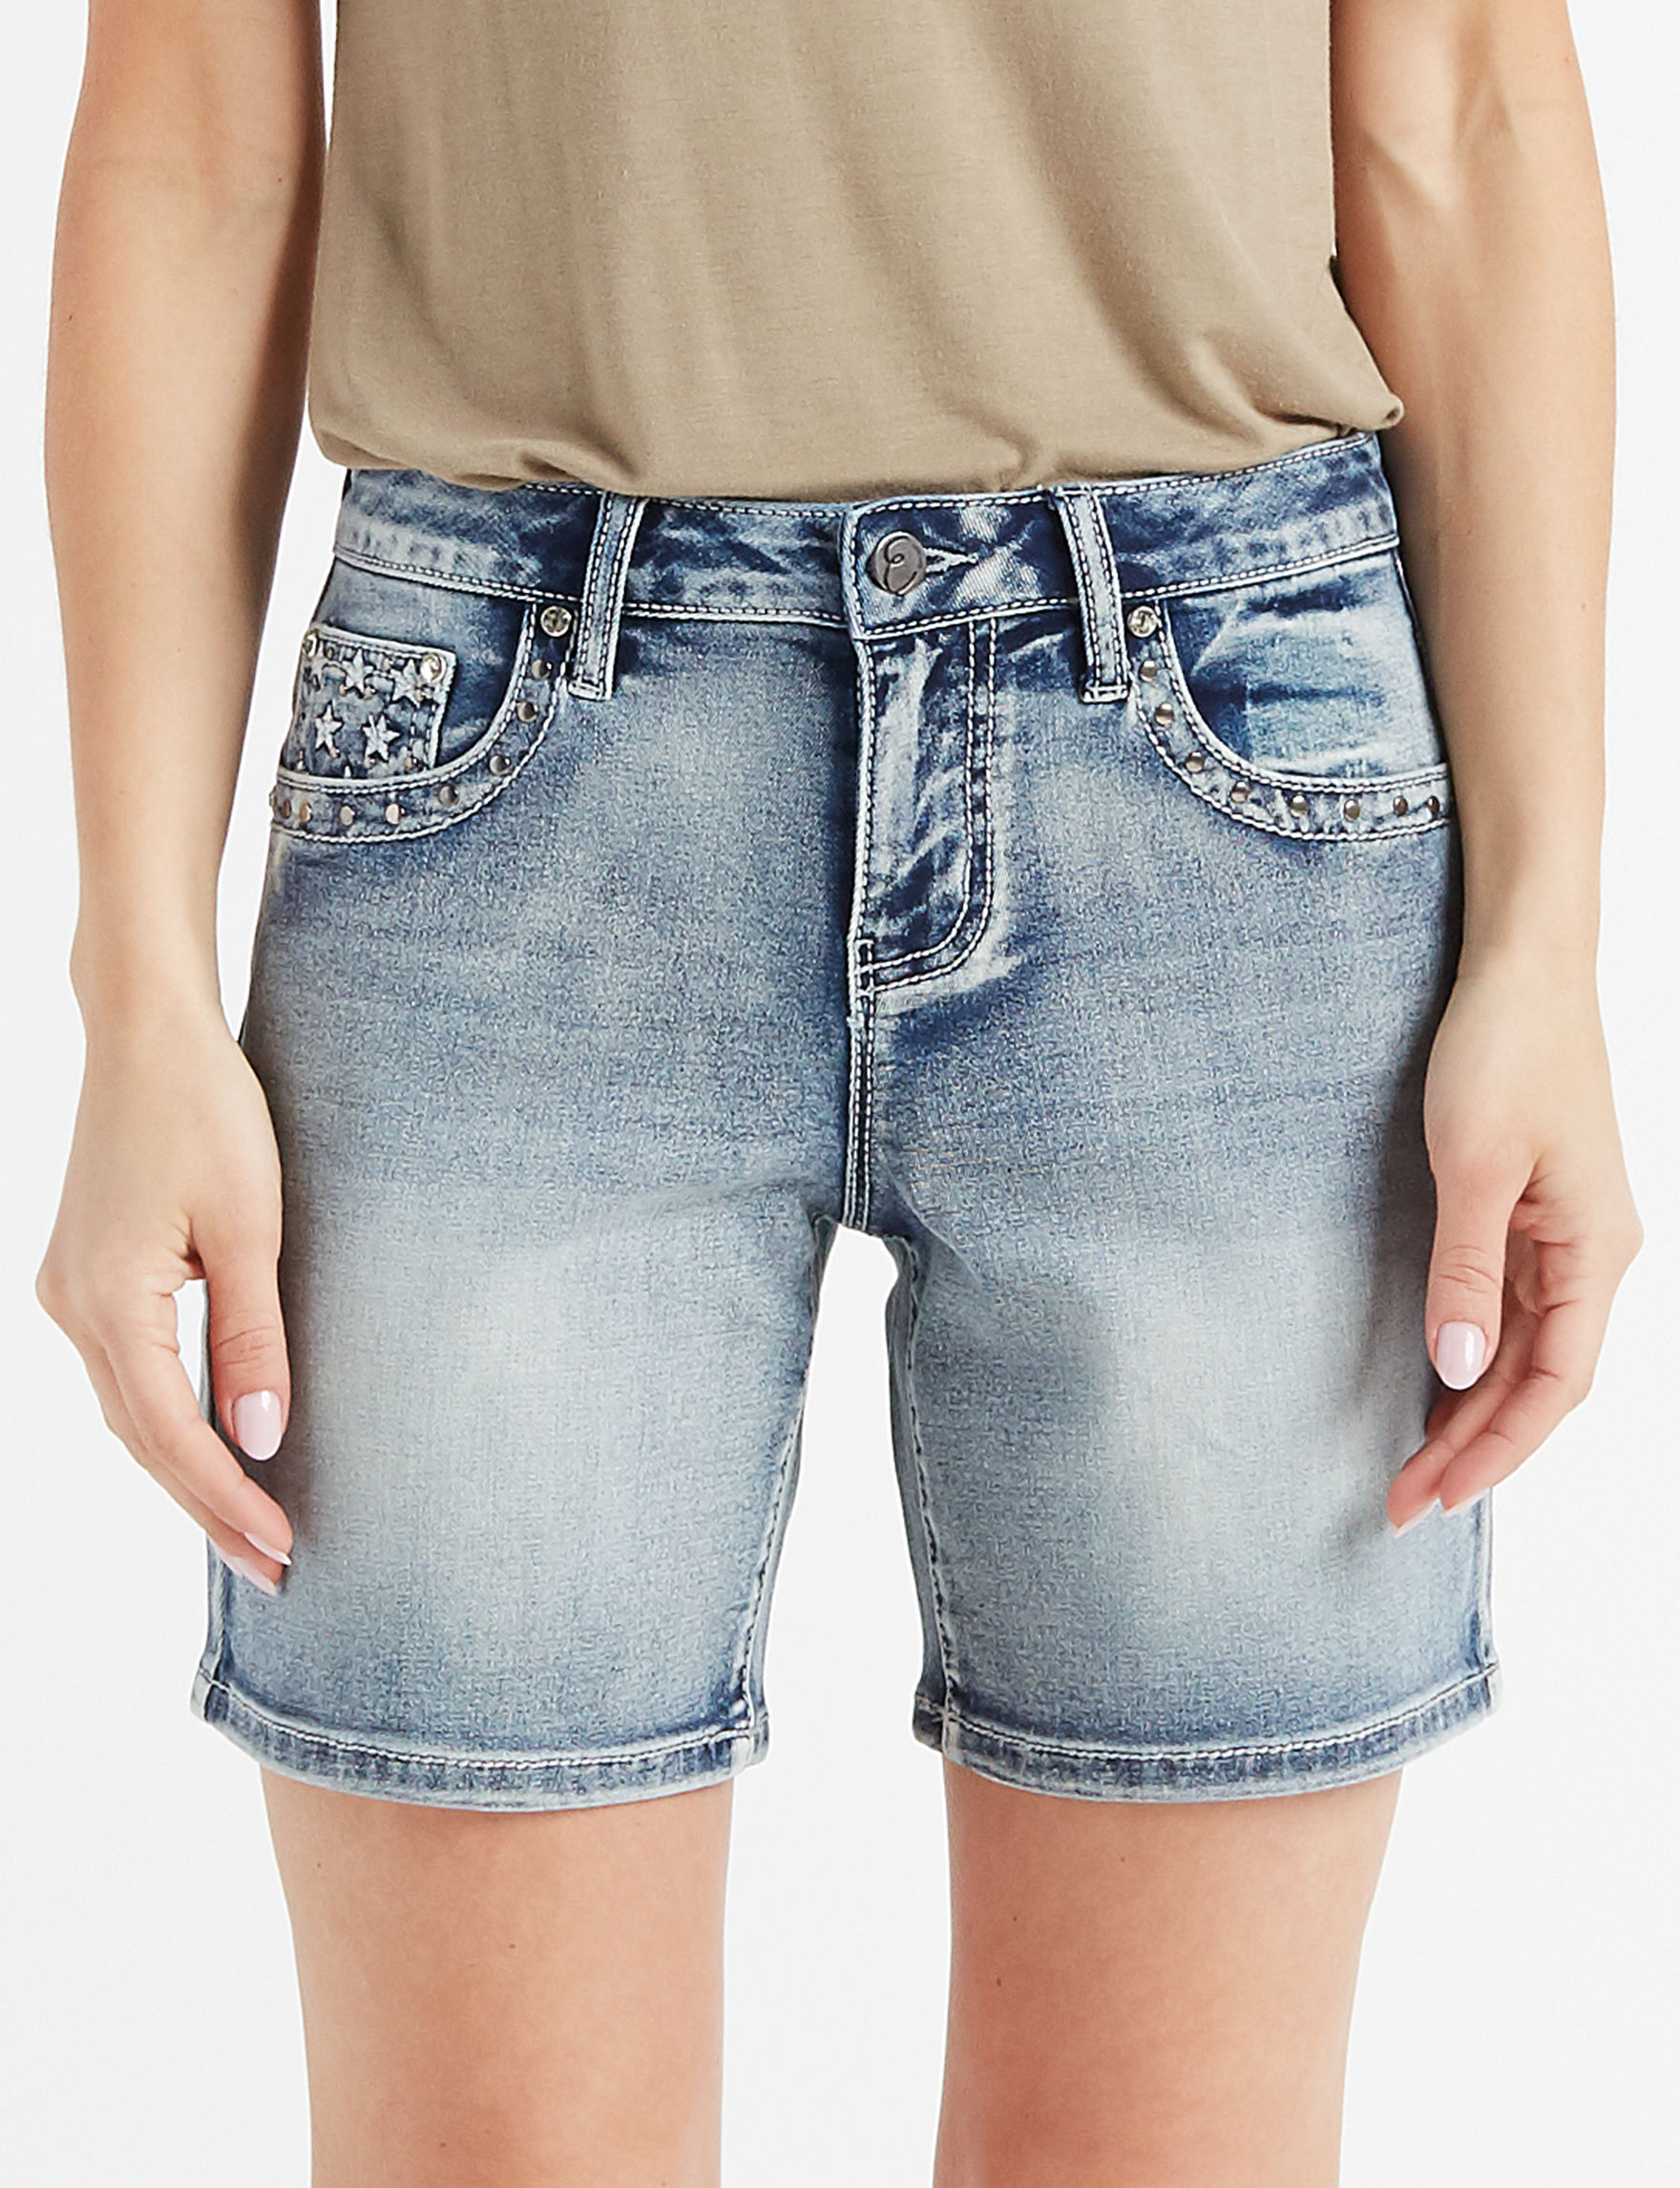 Earl Jean Blue Denim Shorts